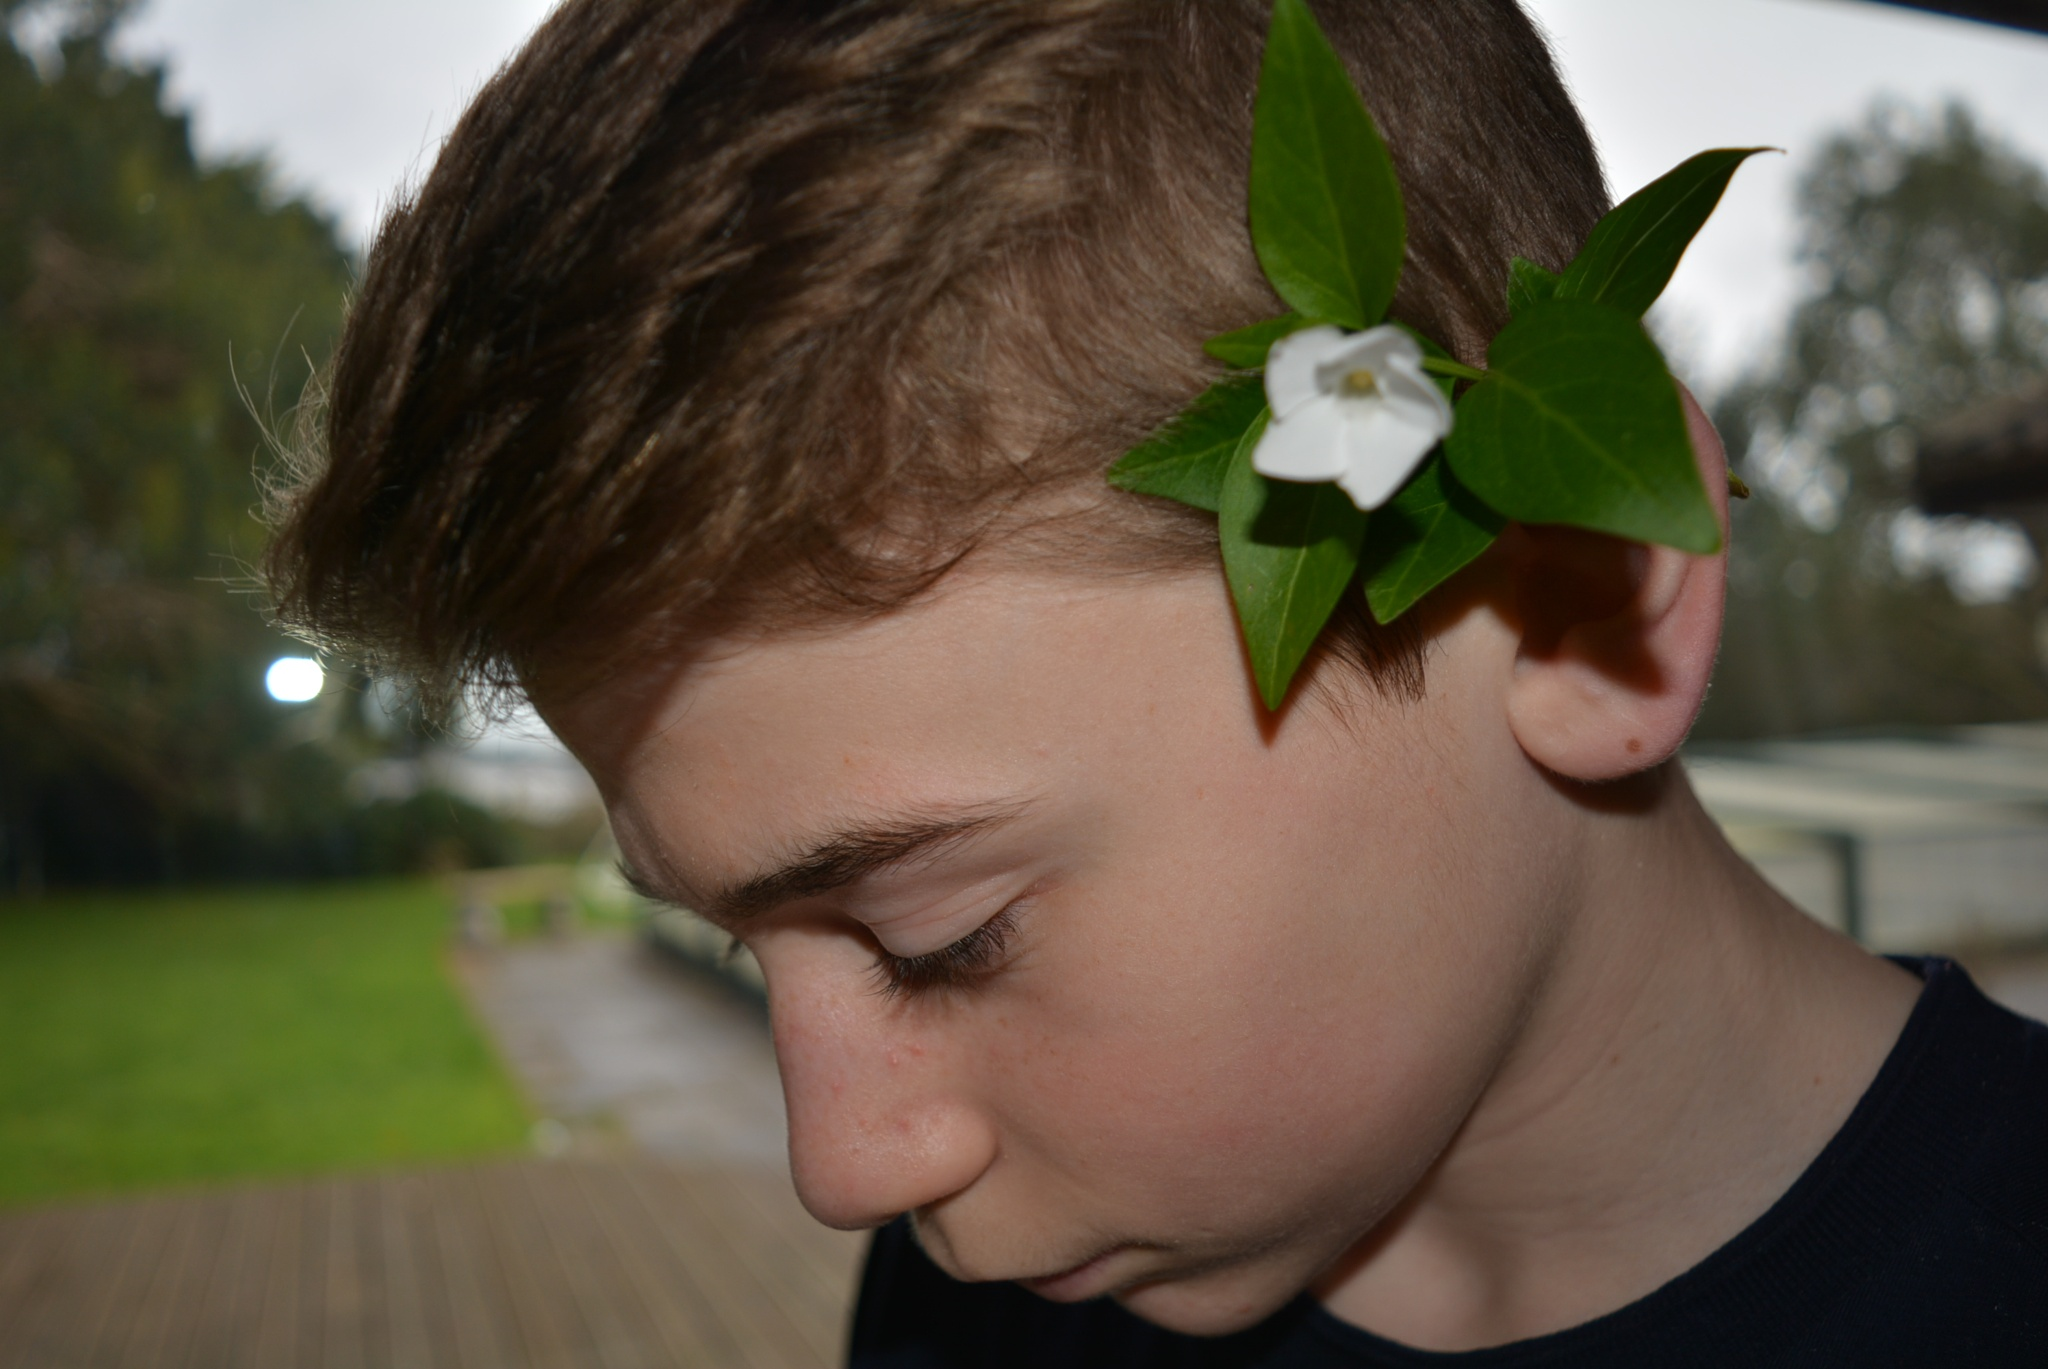 Little boy with flower in his hair by Talana_smith